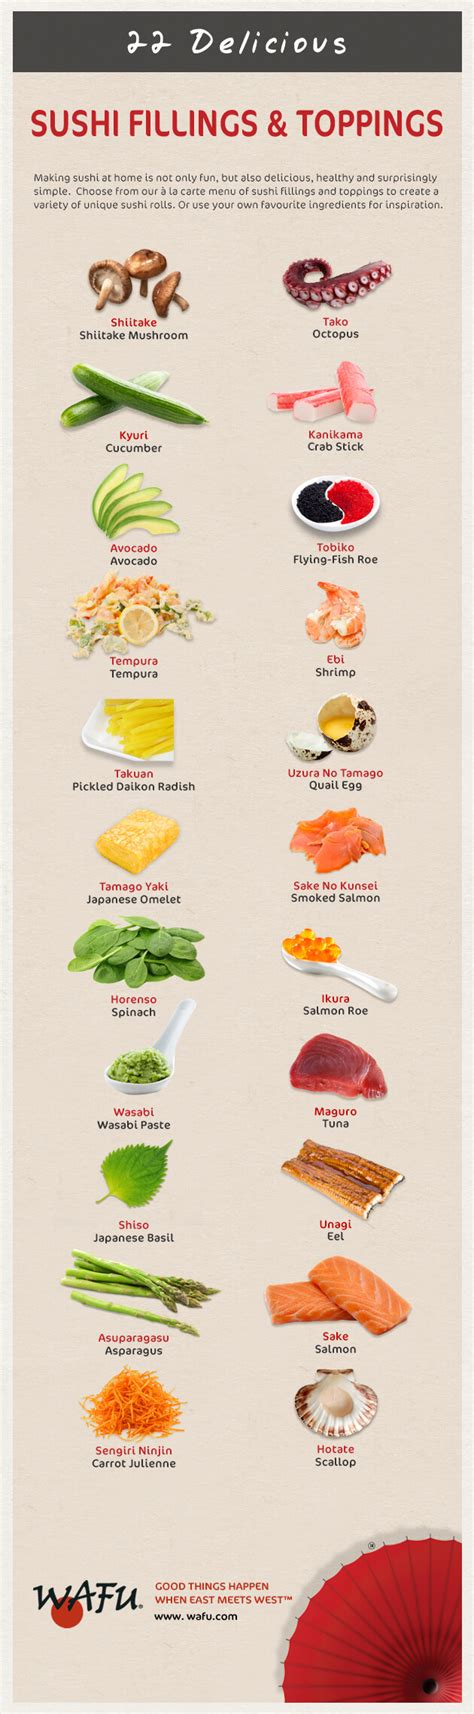 Interior Decorating Websites by 22 Delicious Sushi Fillings Amp Toppings Infographic Exaltus